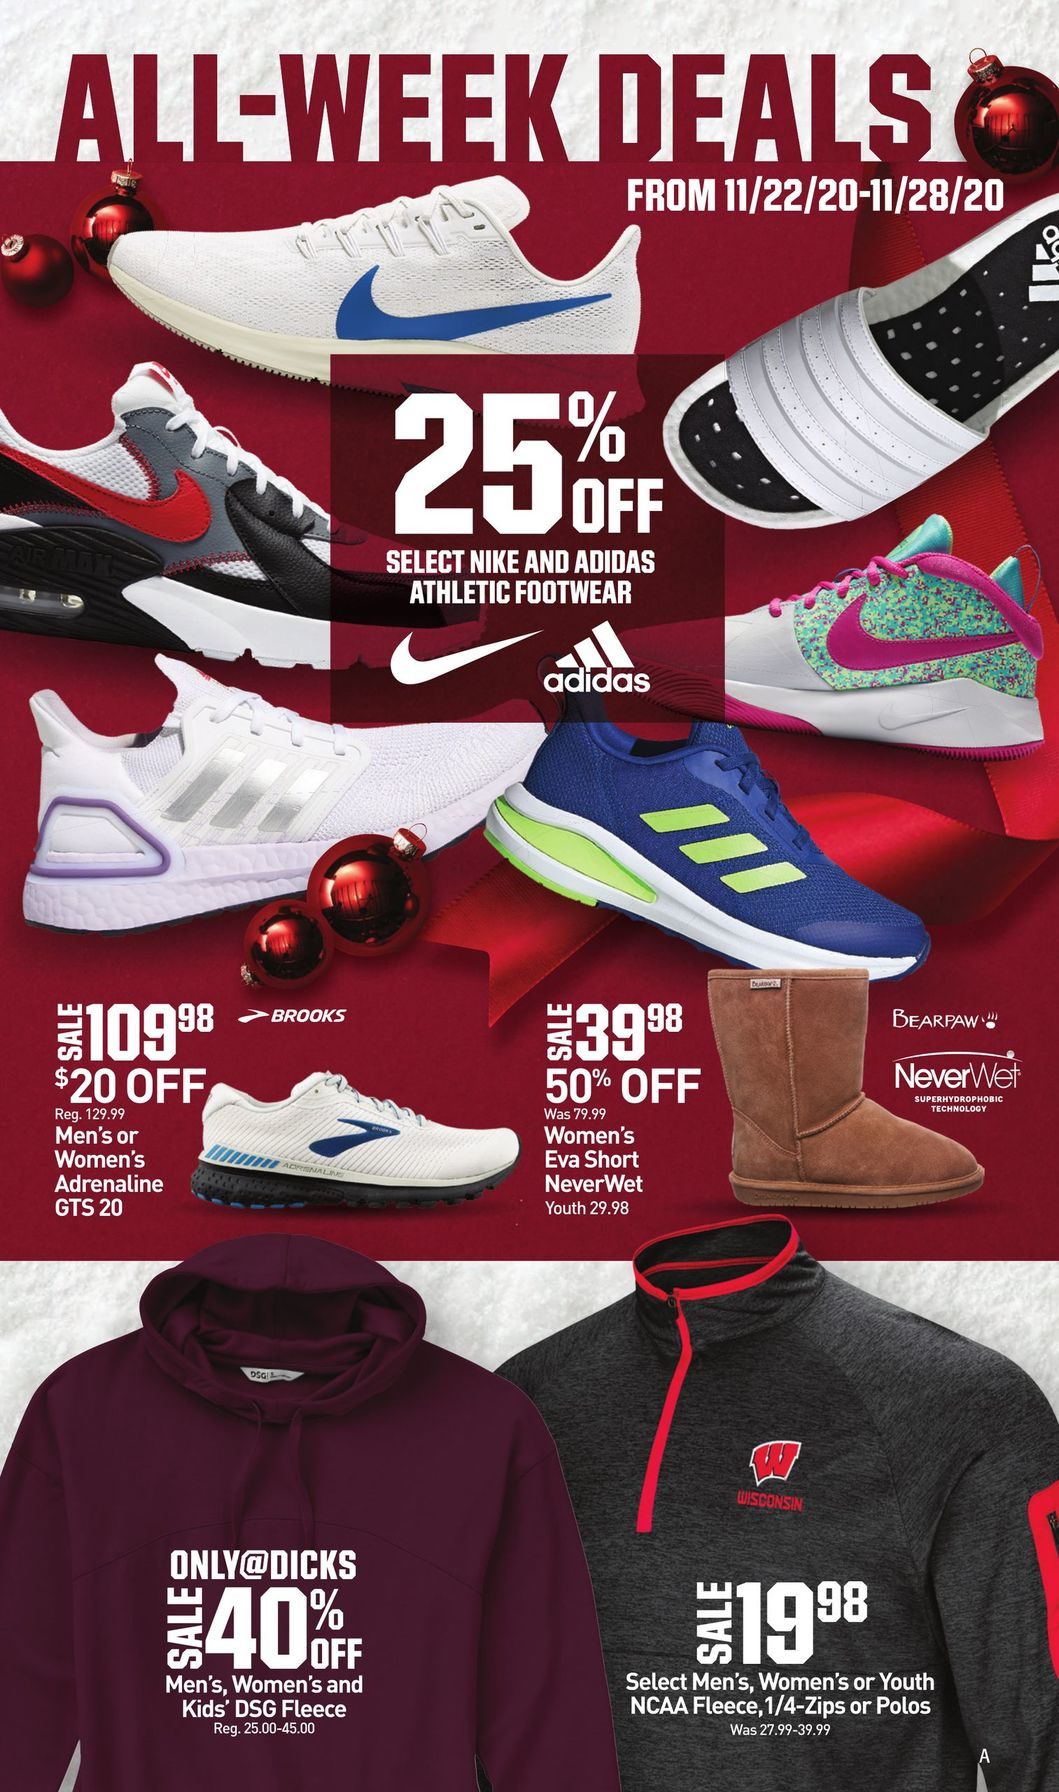 Dick's Sporting Goods Black Friday 2020 Page 5